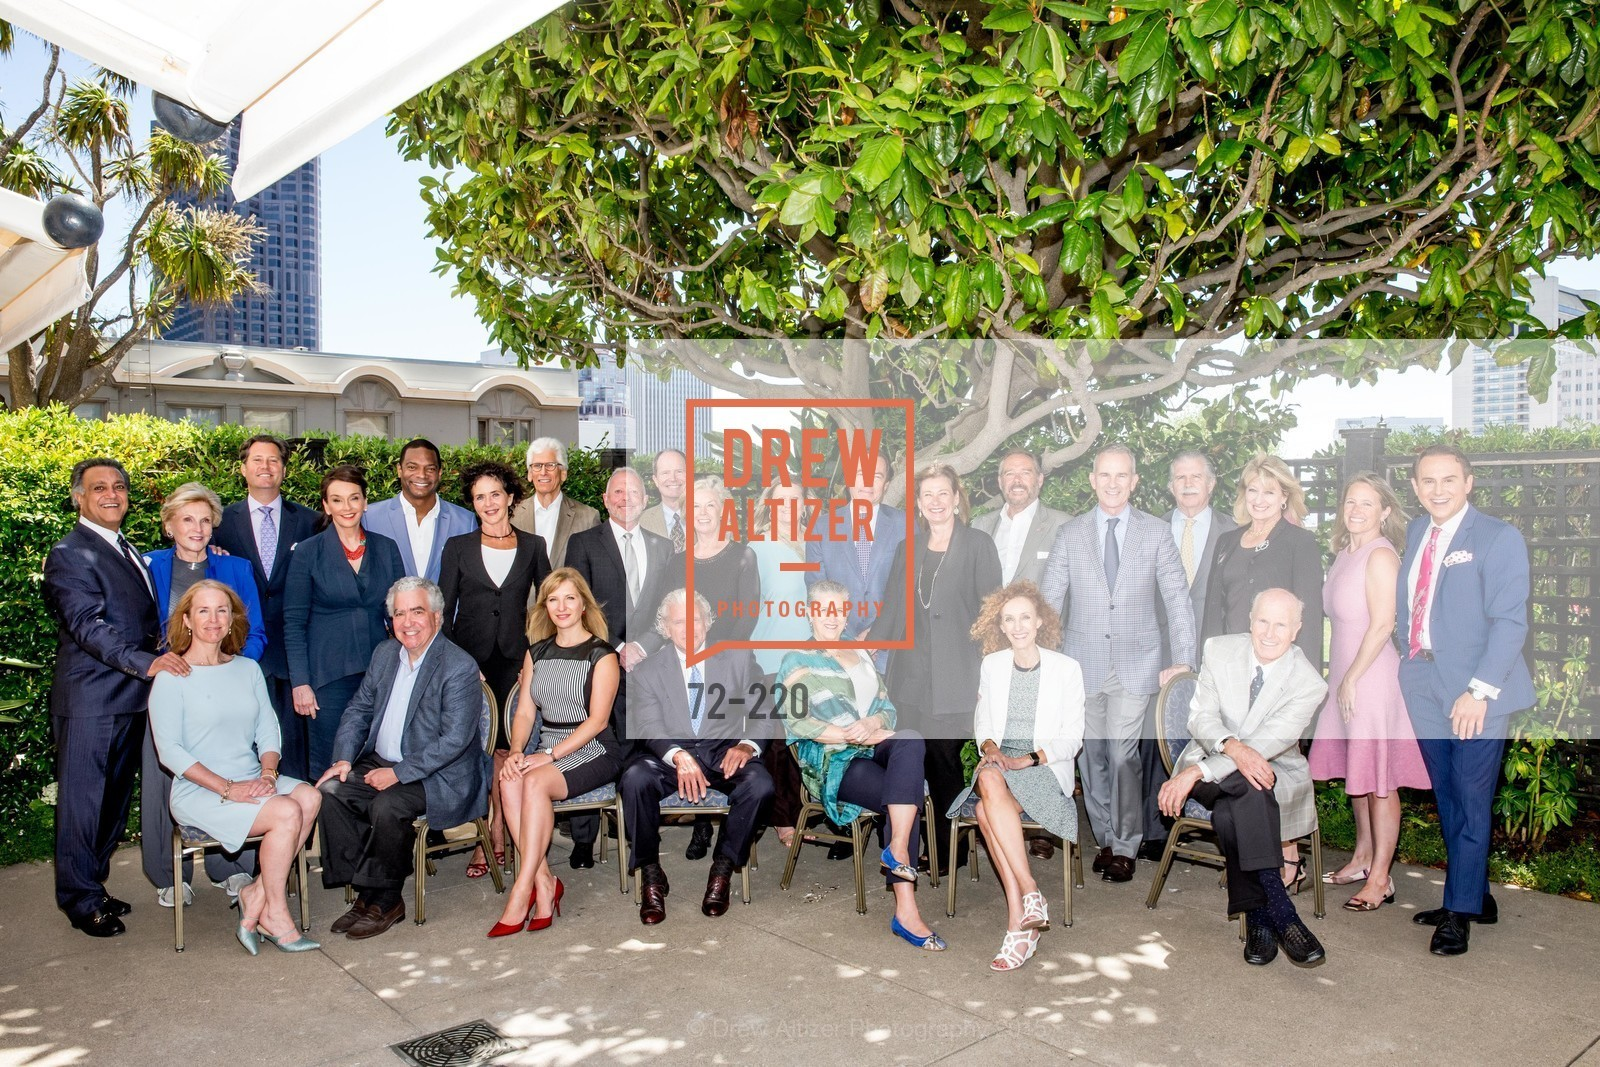 Mark Attarha, Lois Lehrman, Maureen Terris, Patrick Barber, Elisa Stephens, Eric Johnson, David Papale, Betty Brachman, Steve Gothelf, Helena Zaludova, Rick Turley, Michael McCutcheon, Peggy Economos, Bill Bullock, Dona Crowder, Nahid Nassiri, Mark Best, Anita Head, Joe Moore, Lina Hatbany, Jeffrey Gibson, Jay Costello, Pattie Lawton, Charles Moore, Kelly Canady, Joel Goodrich, NHG Real Estate Luncheon, The Fairmont Hotel, Fountain Room. 950 Mason St, August 3rd, 2015,Drew Altizer, Drew Altizer Photography, full-service agency, private events, San Francisco photographer, photographer california